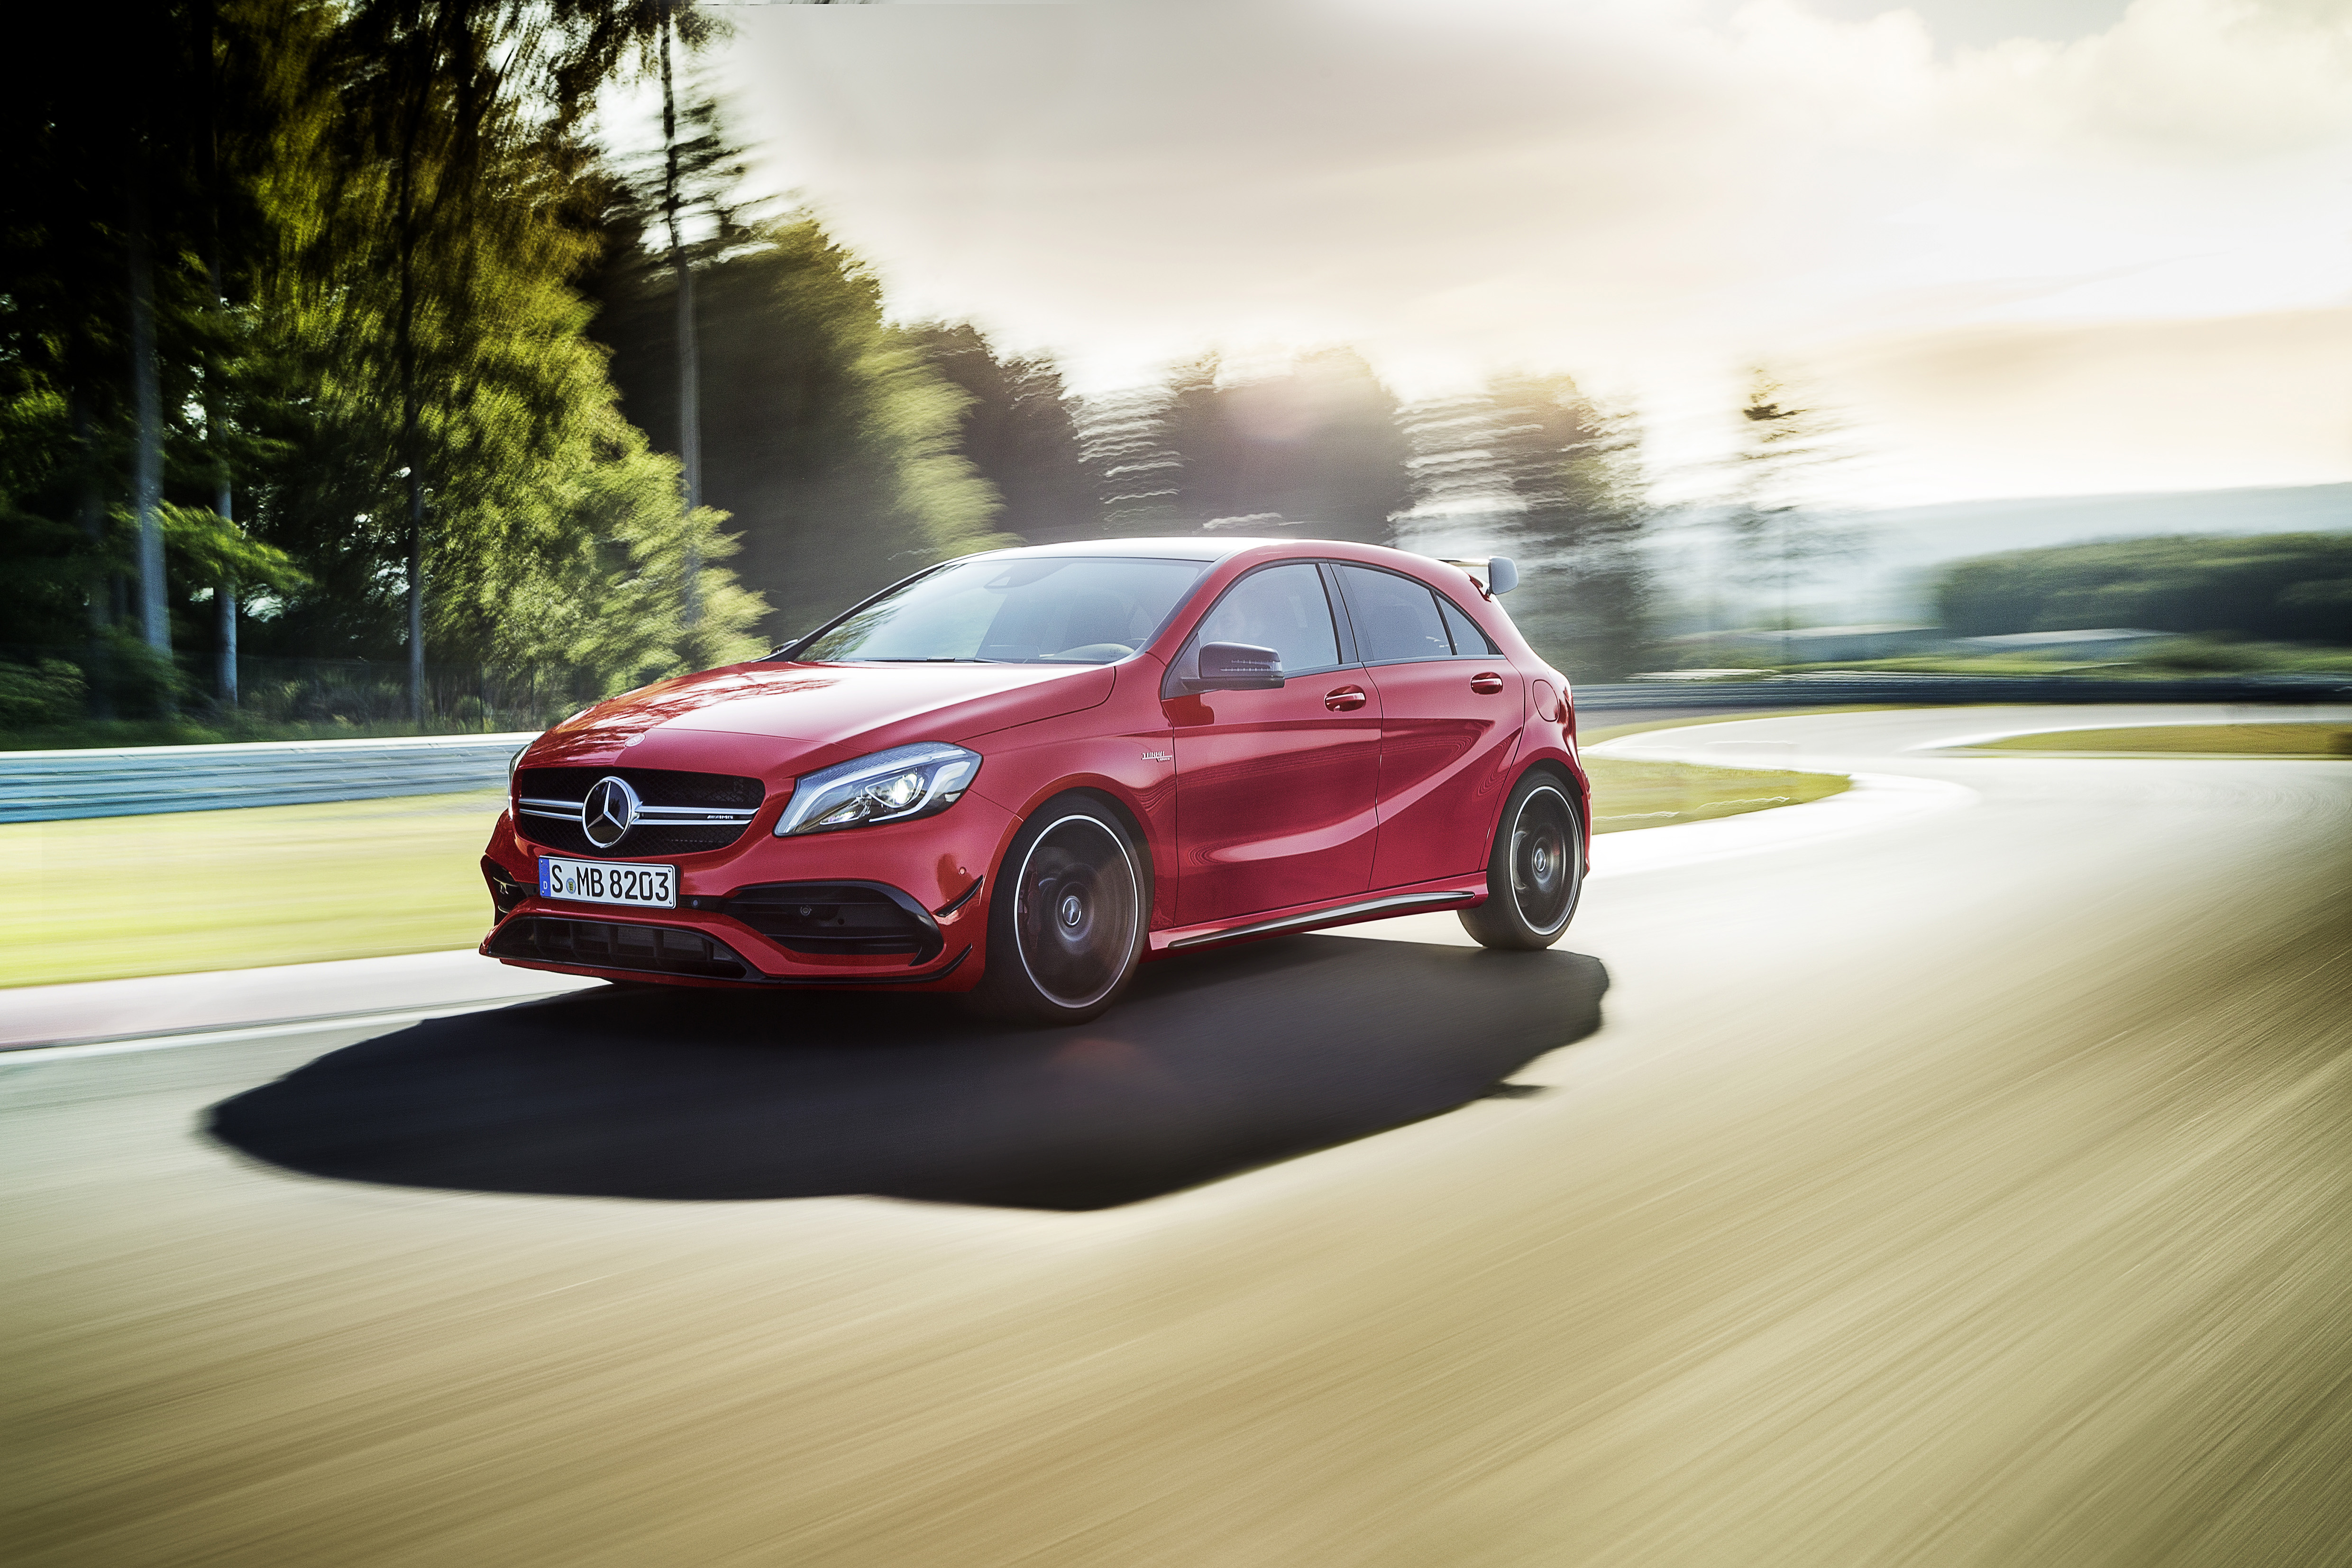 2016 mercedes a class facelift pricing revealed amg a45 4matic hot hatch starts at 51 051. Black Bedroom Furniture Sets. Home Design Ideas